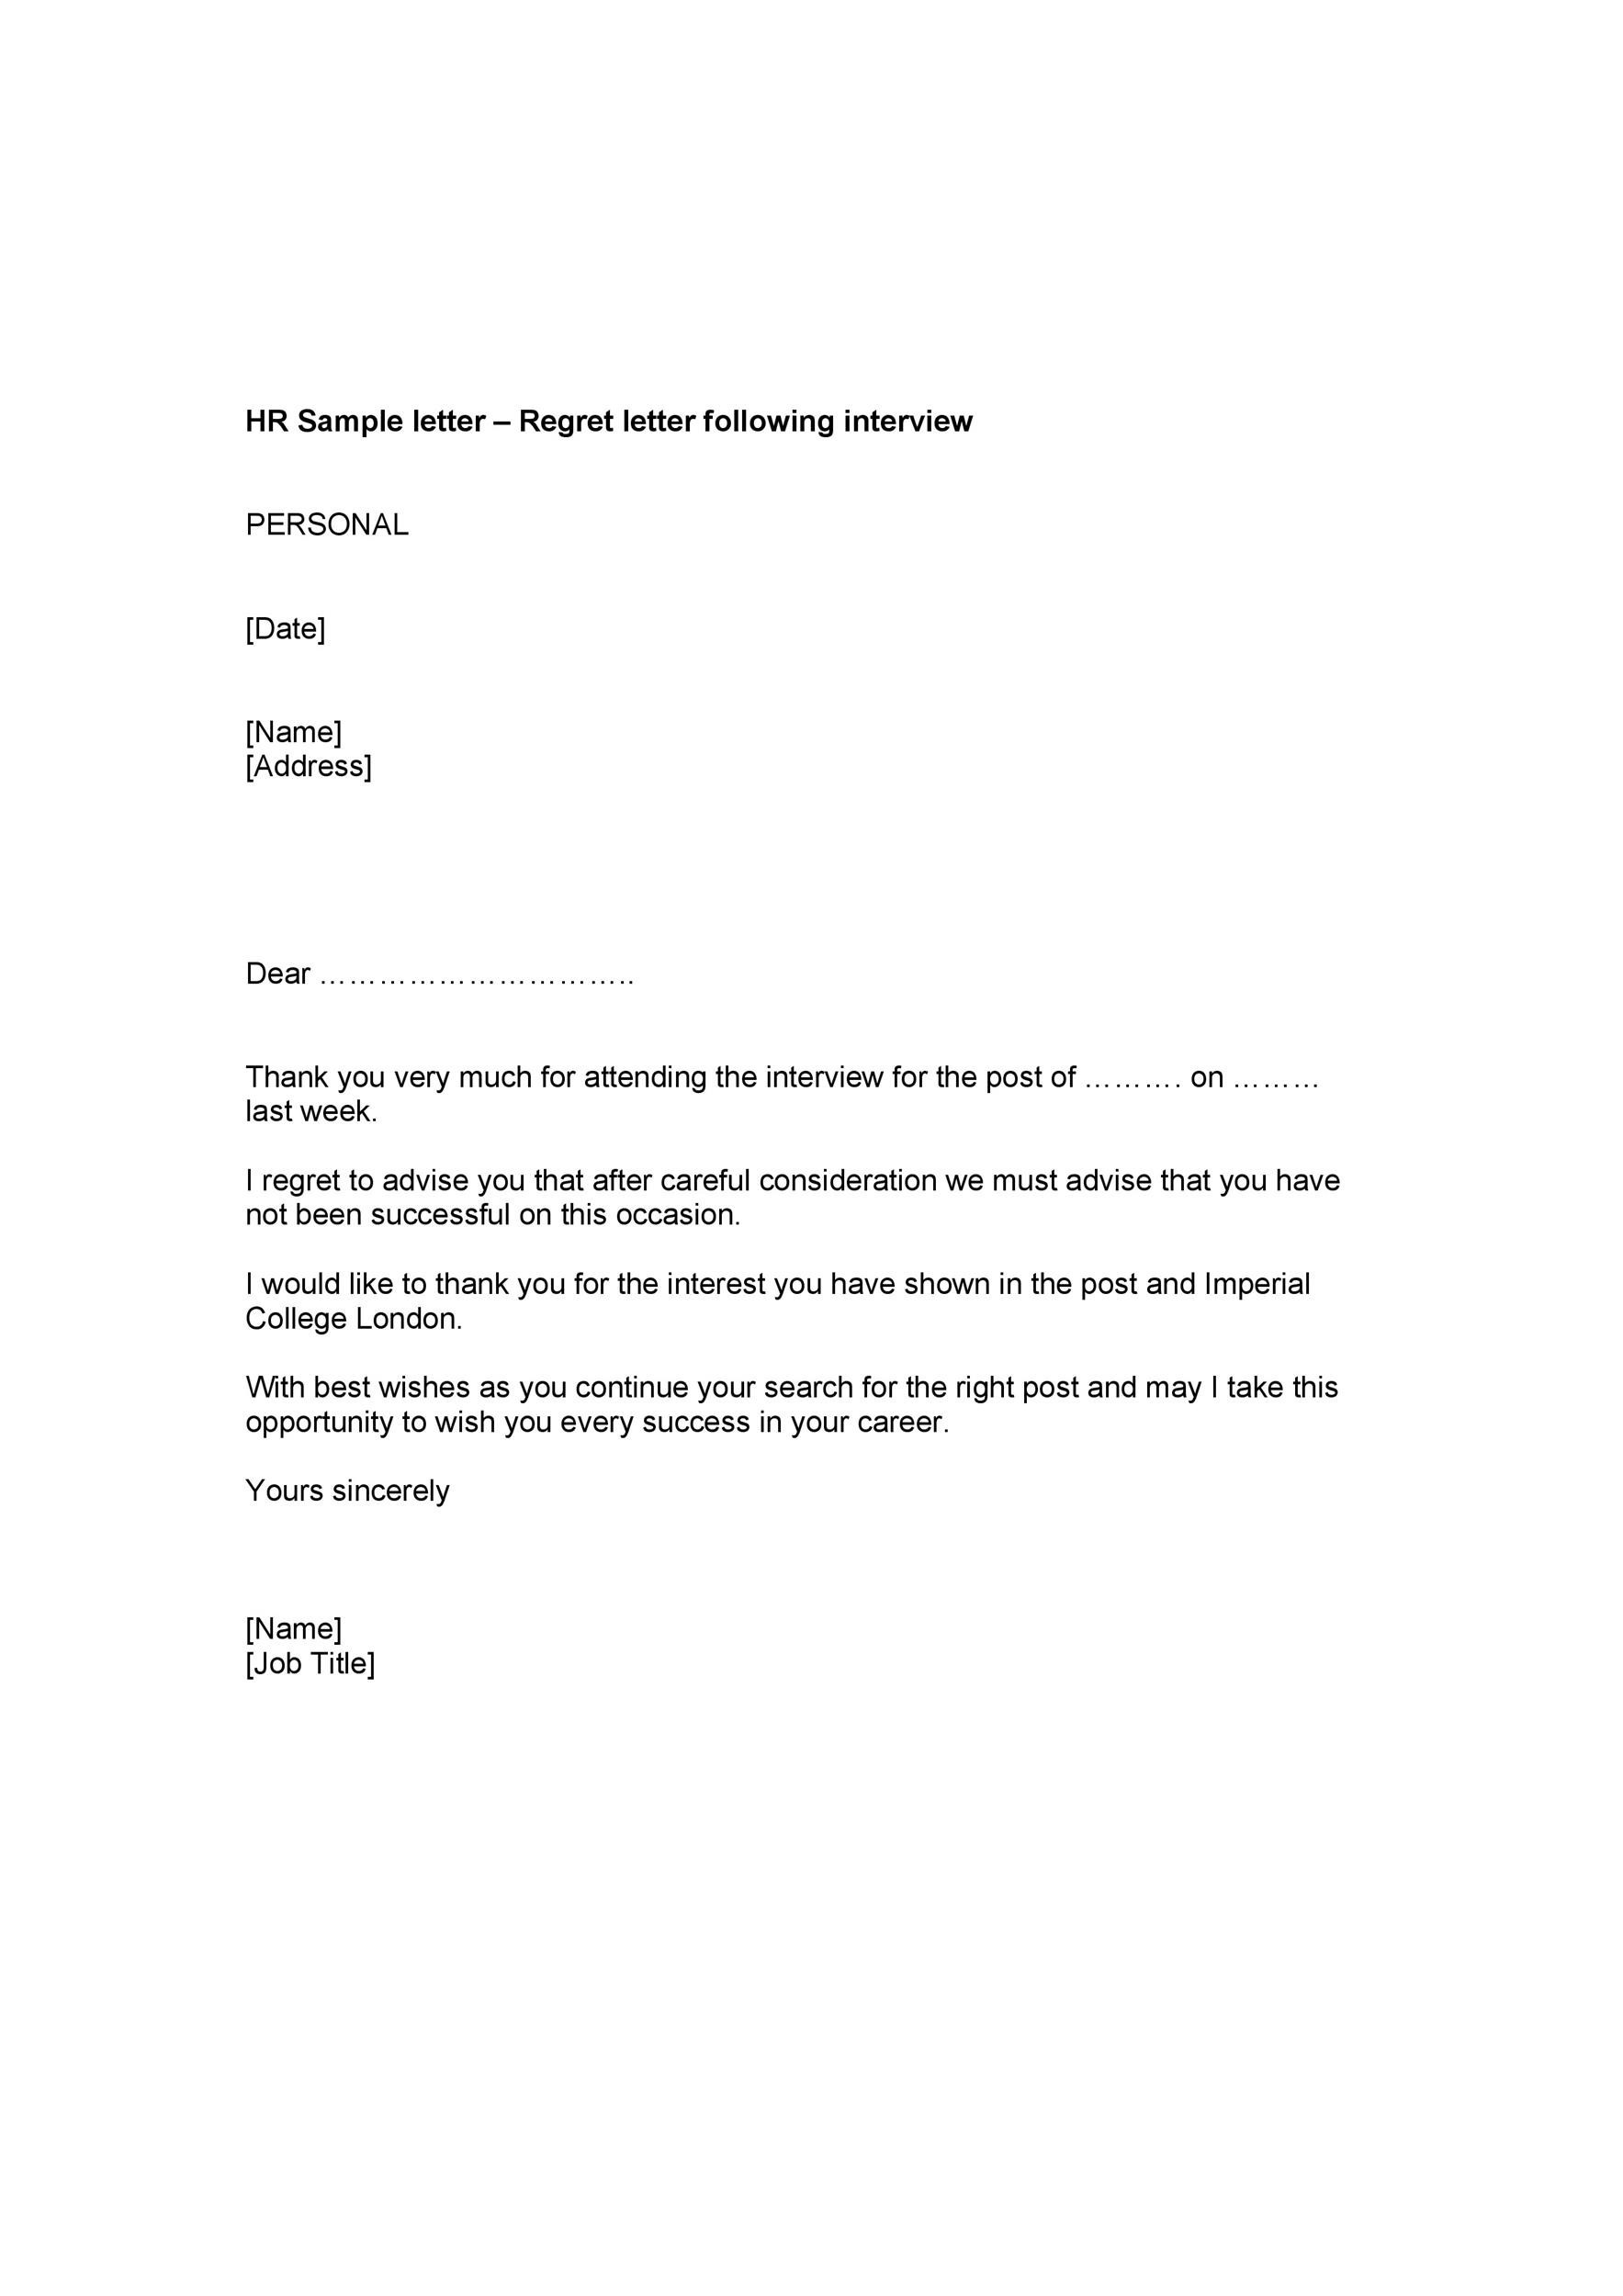 Letter To Reject A Job Offer from templatelab.com